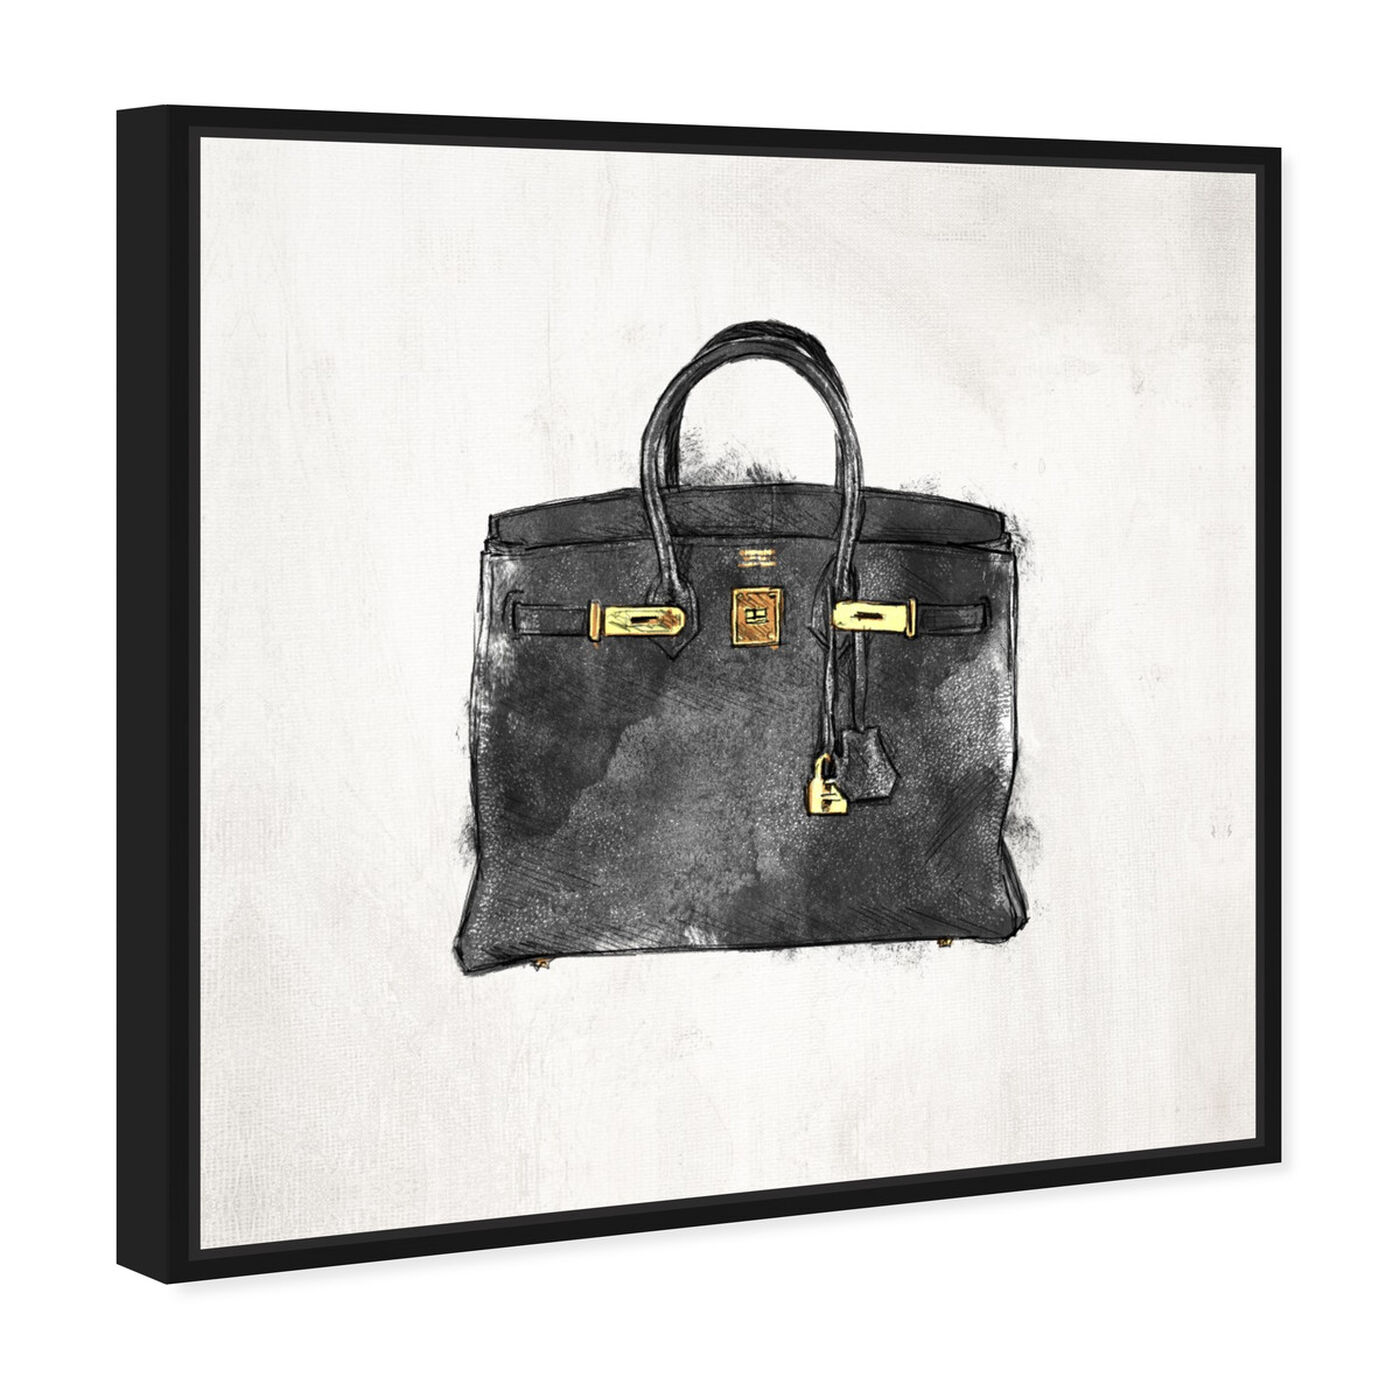 Angled view of My Lucky Bag Black I featuring fashion and glam and handbags art.